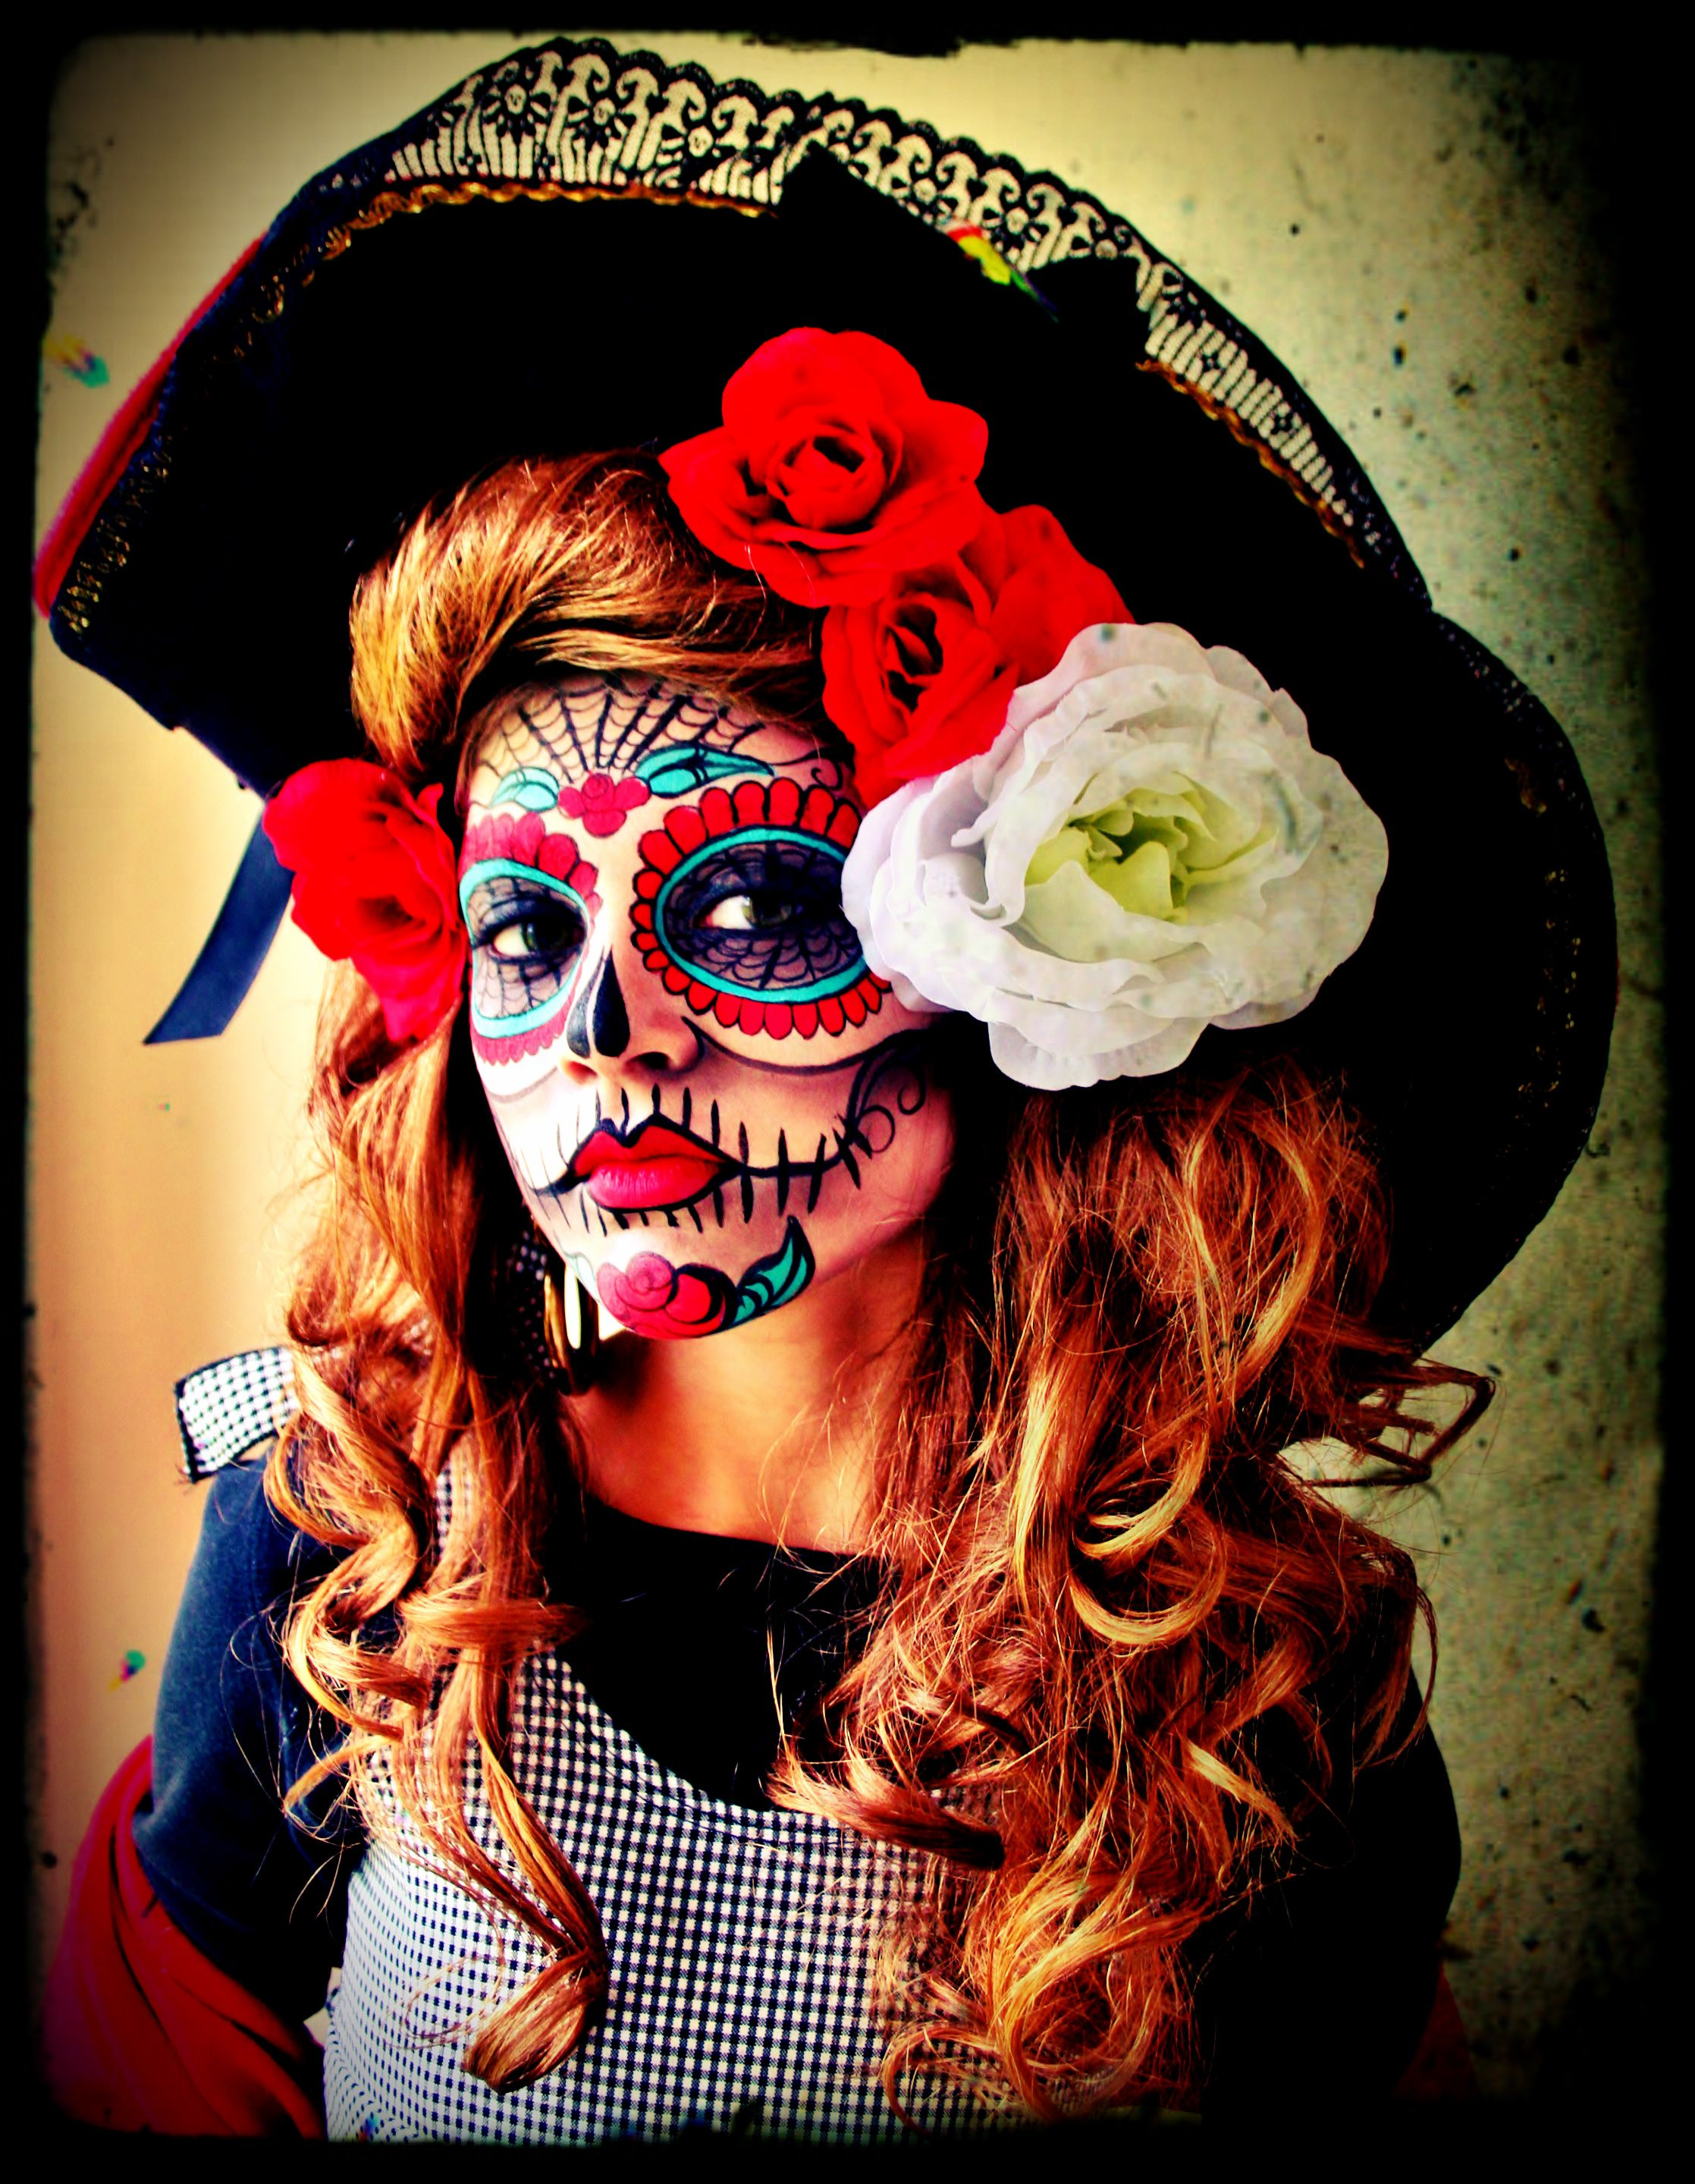 Handpainted Sugar Skull Face!  La Catrina Umylia...my super SMART daughter who also happens to model well naturally!  Dia de los muertos,  Day of the dead celebration,  DIY Halloween Costume, Facepaint.